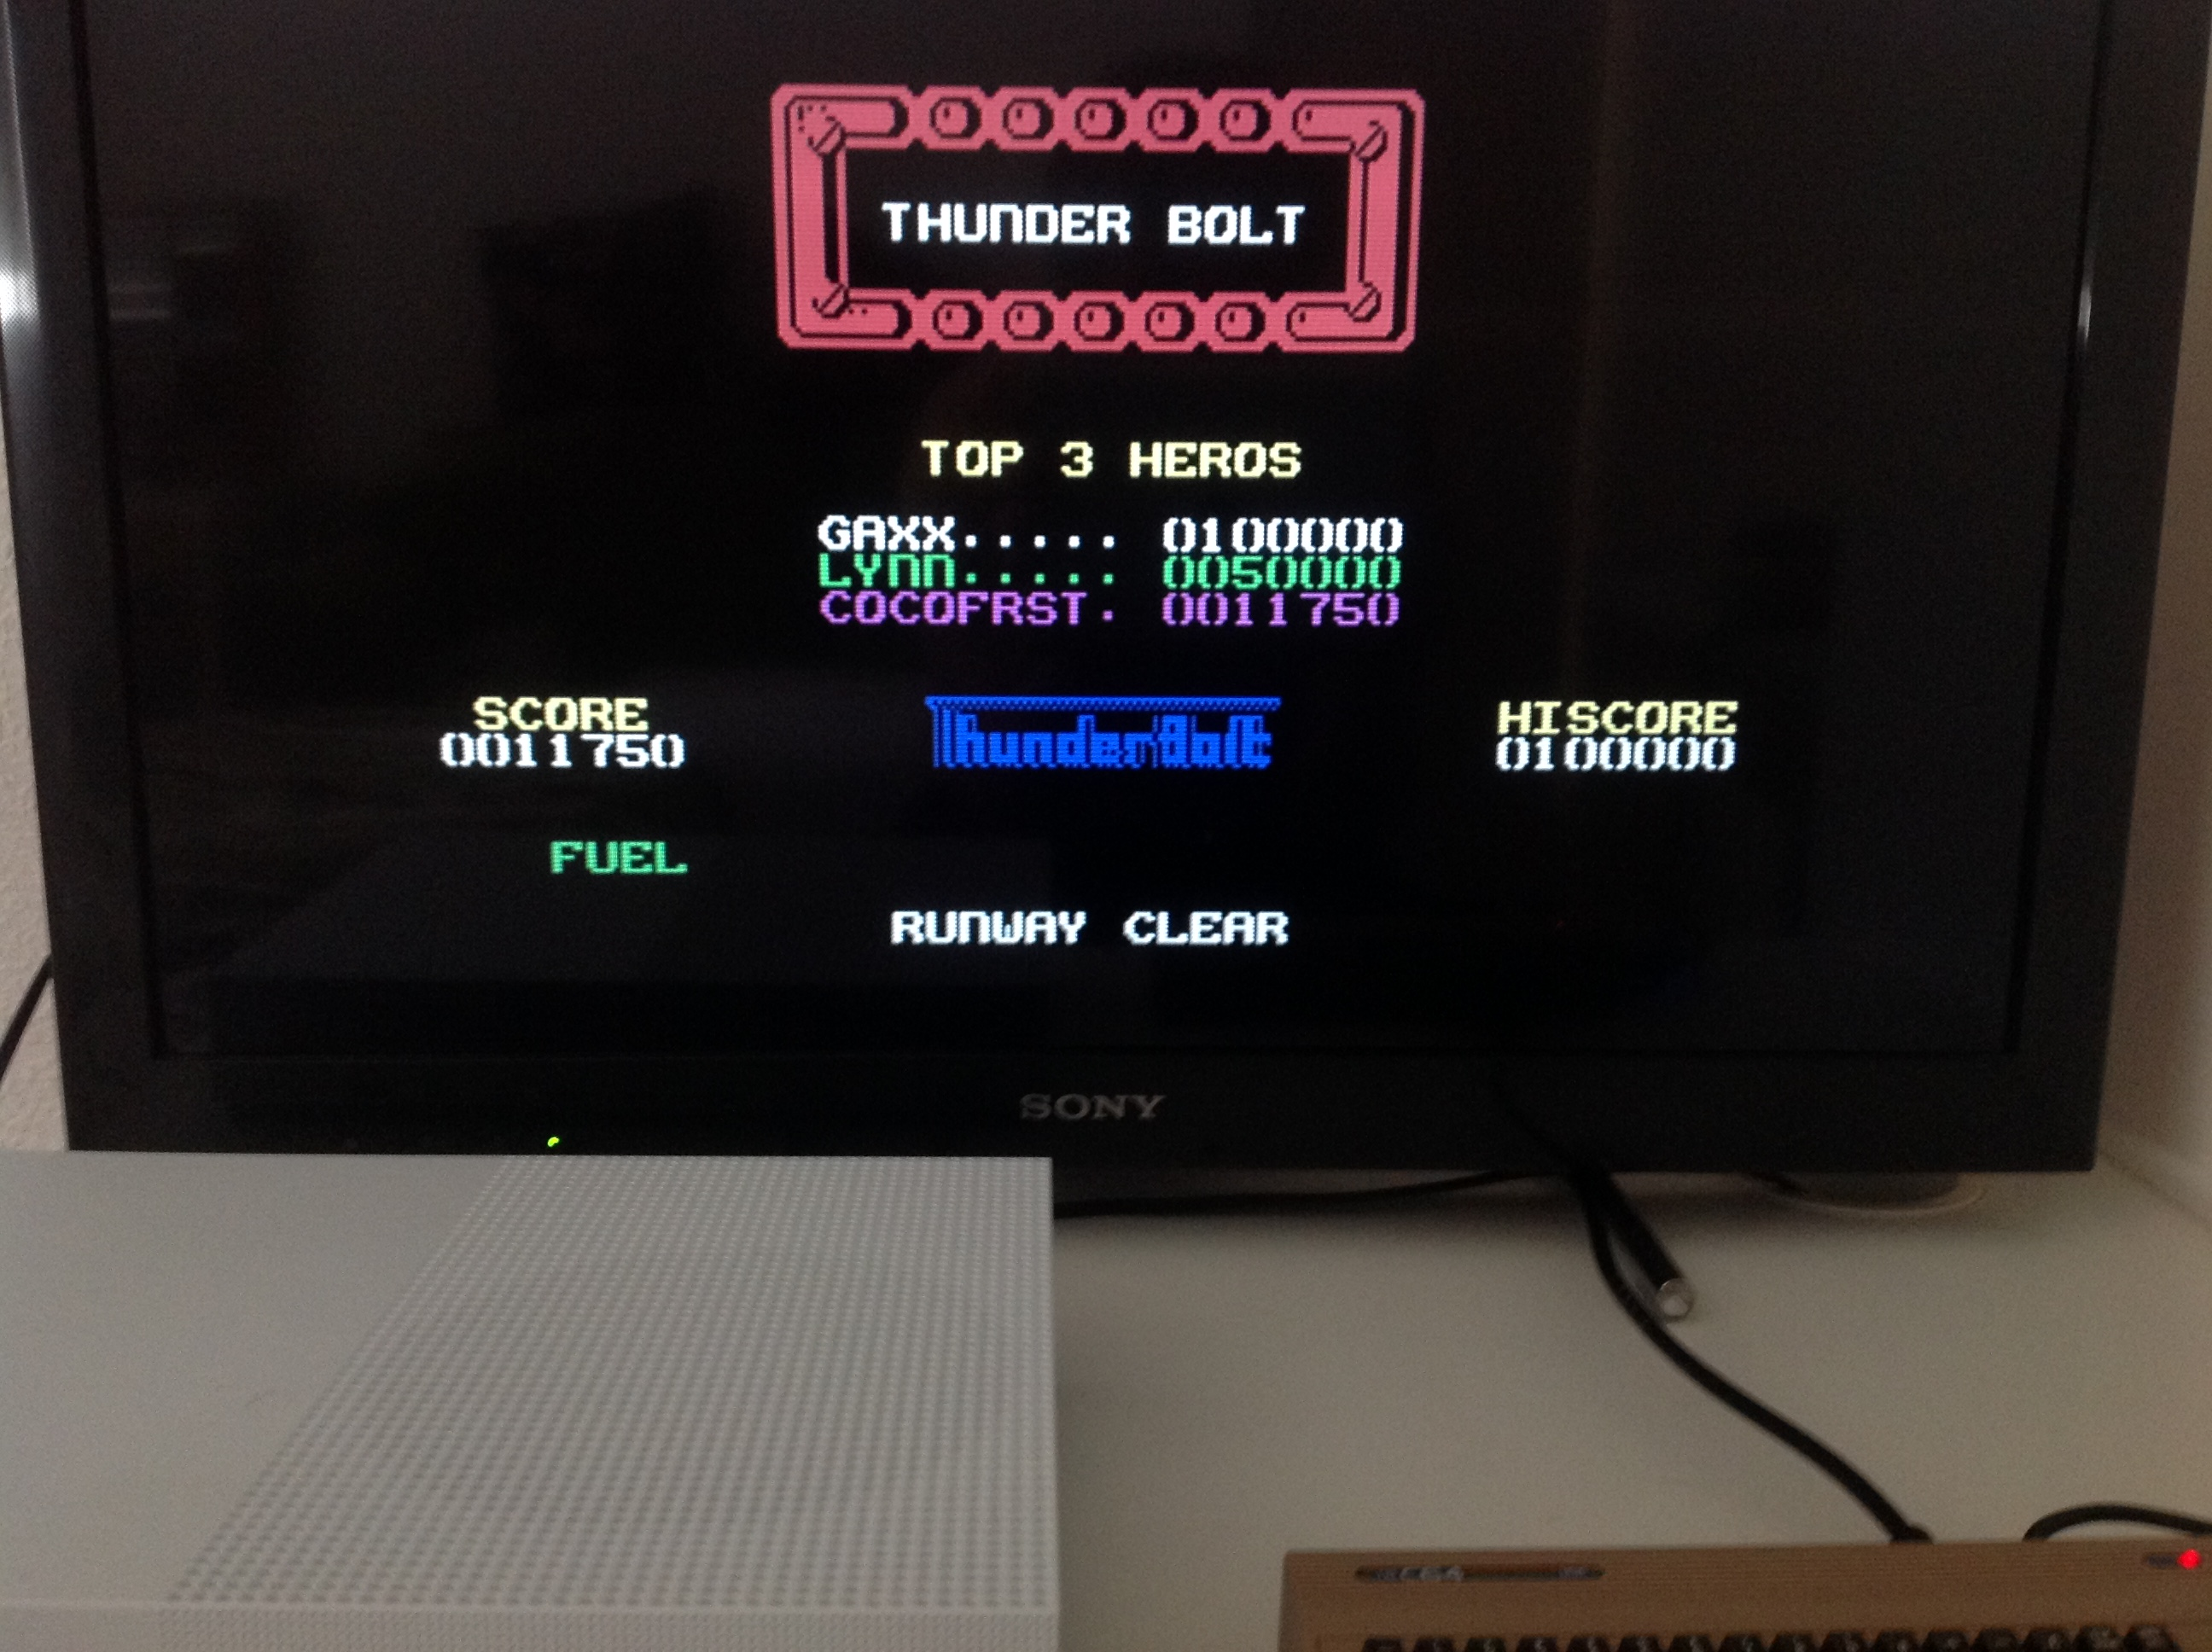 CoCoForest: Thunderbolt [Codemasters] (Commodore 64 Emulated) 11,750 points on 2018-04-16 08:14:50